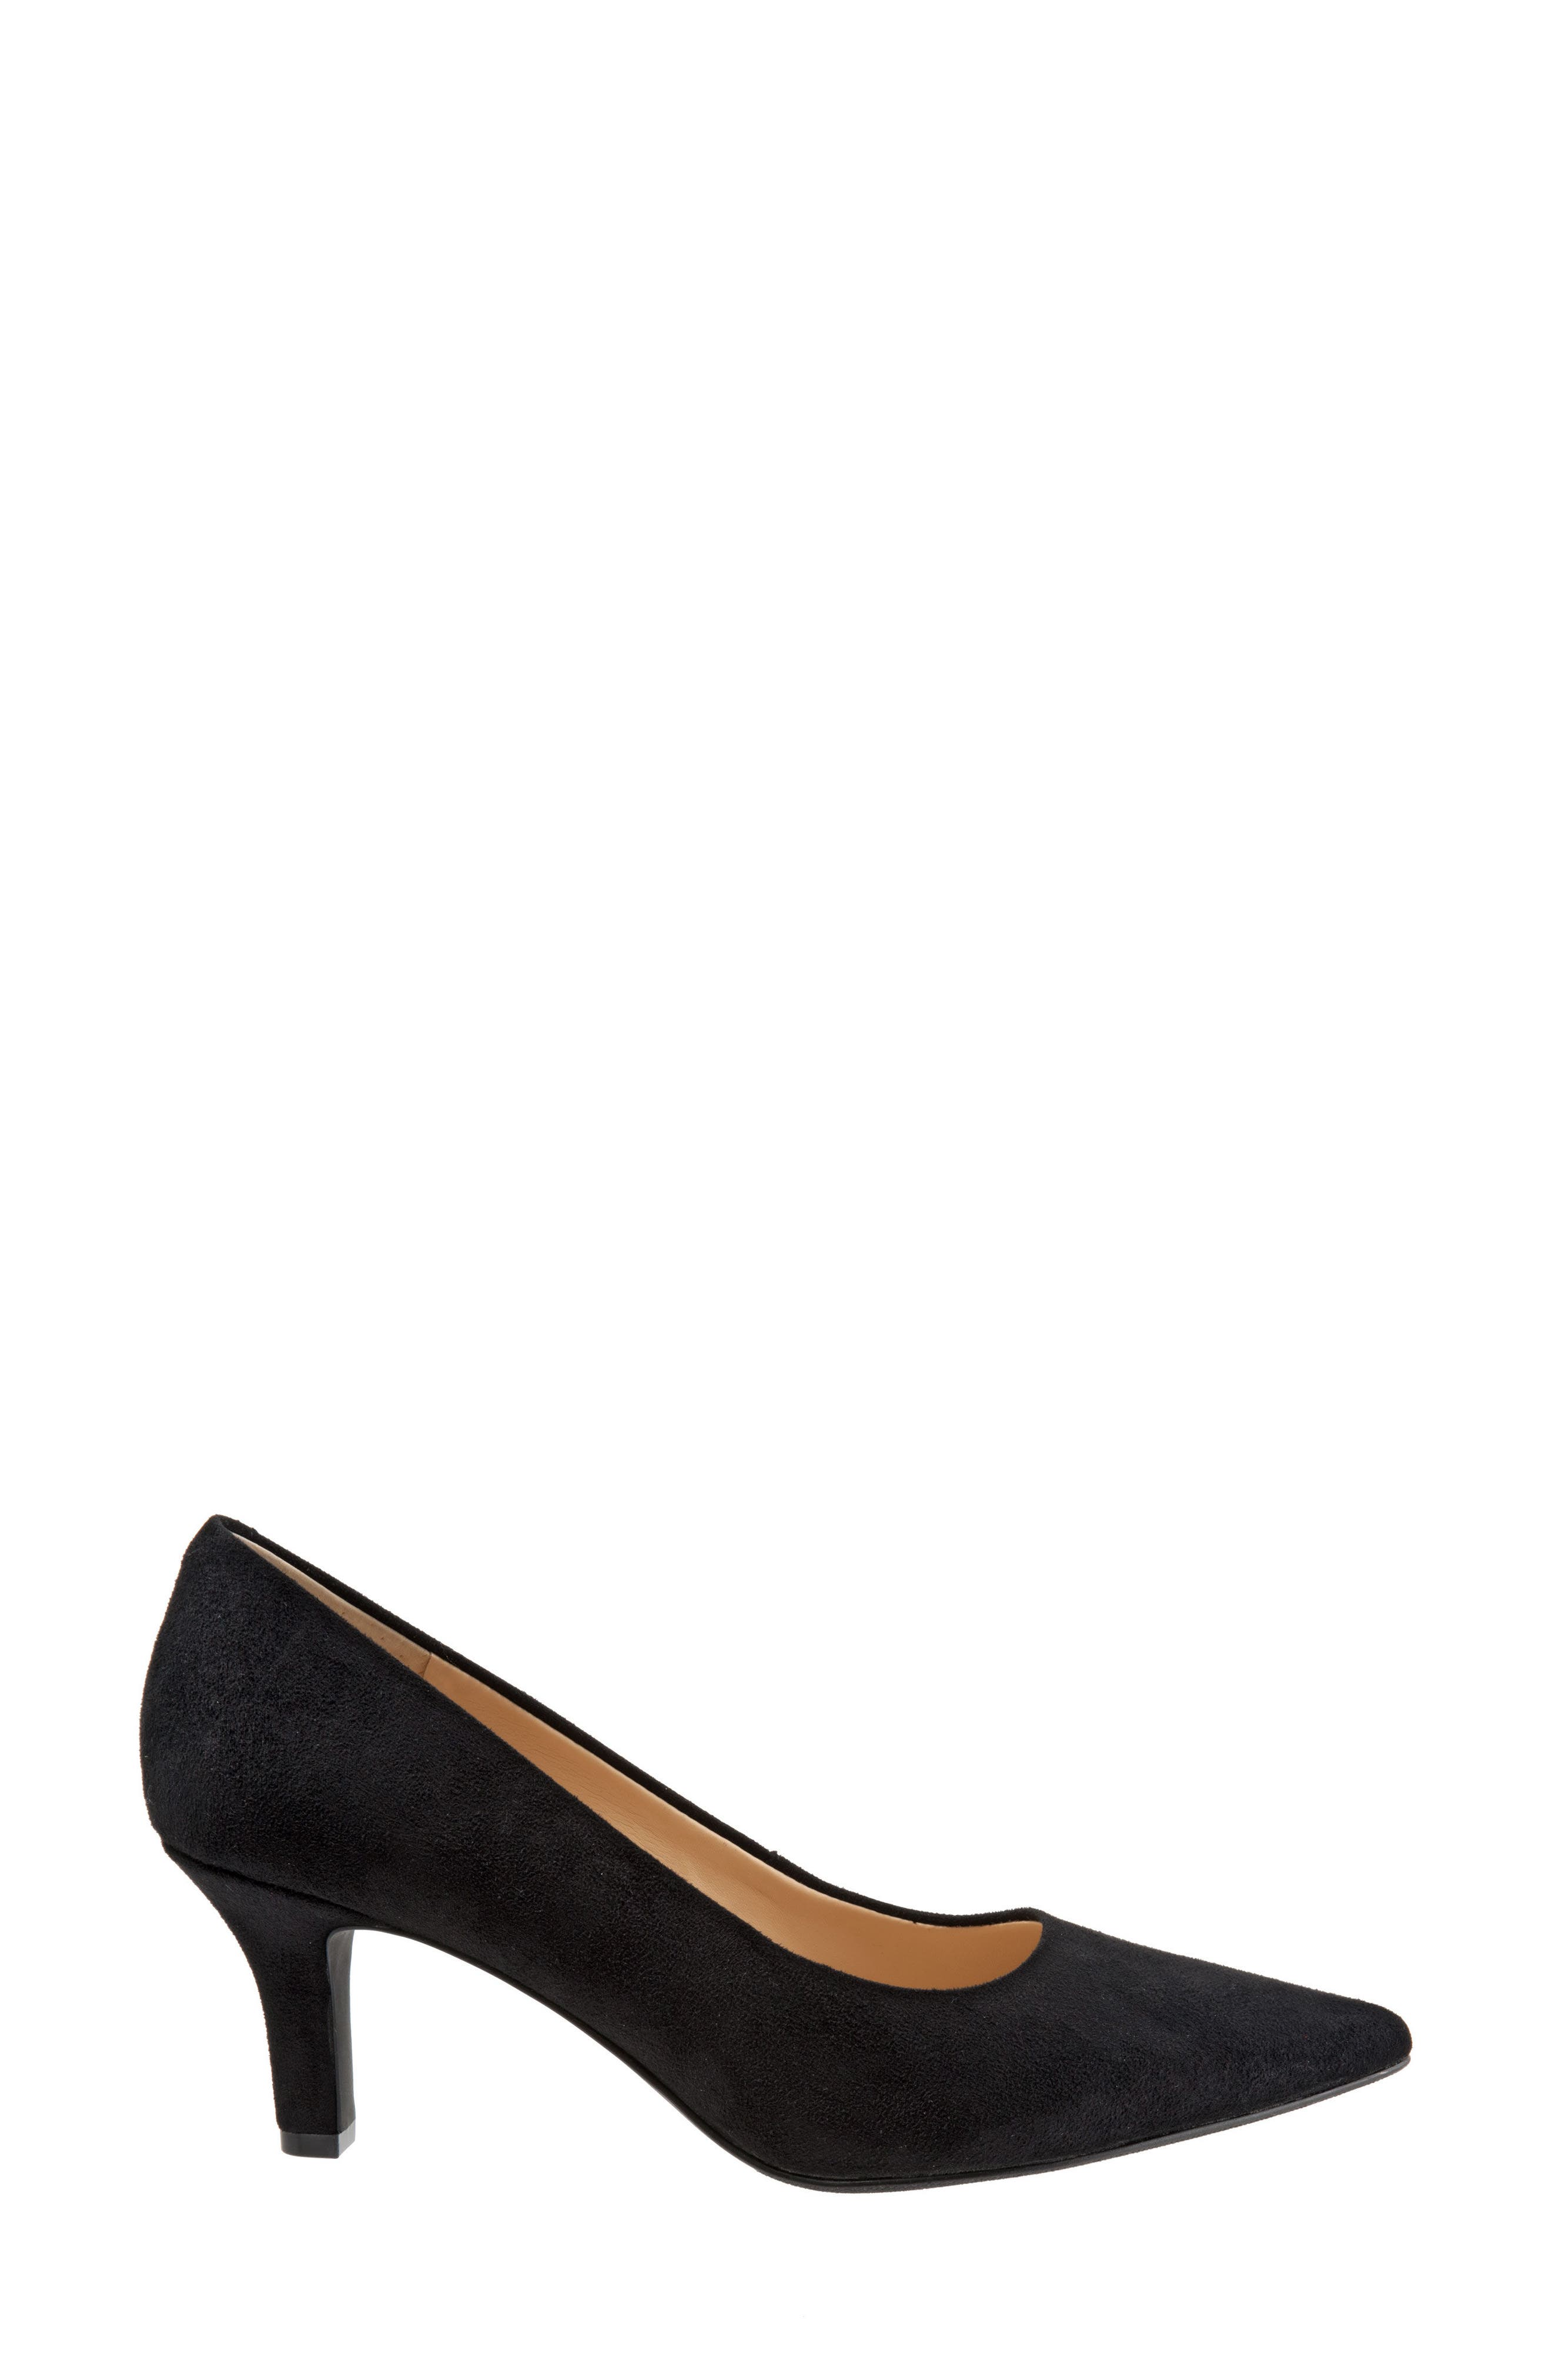 TROTTERS, Noelle Pointy Toe Pump, Alternate thumbnail 3, color, BLACK FABRIC